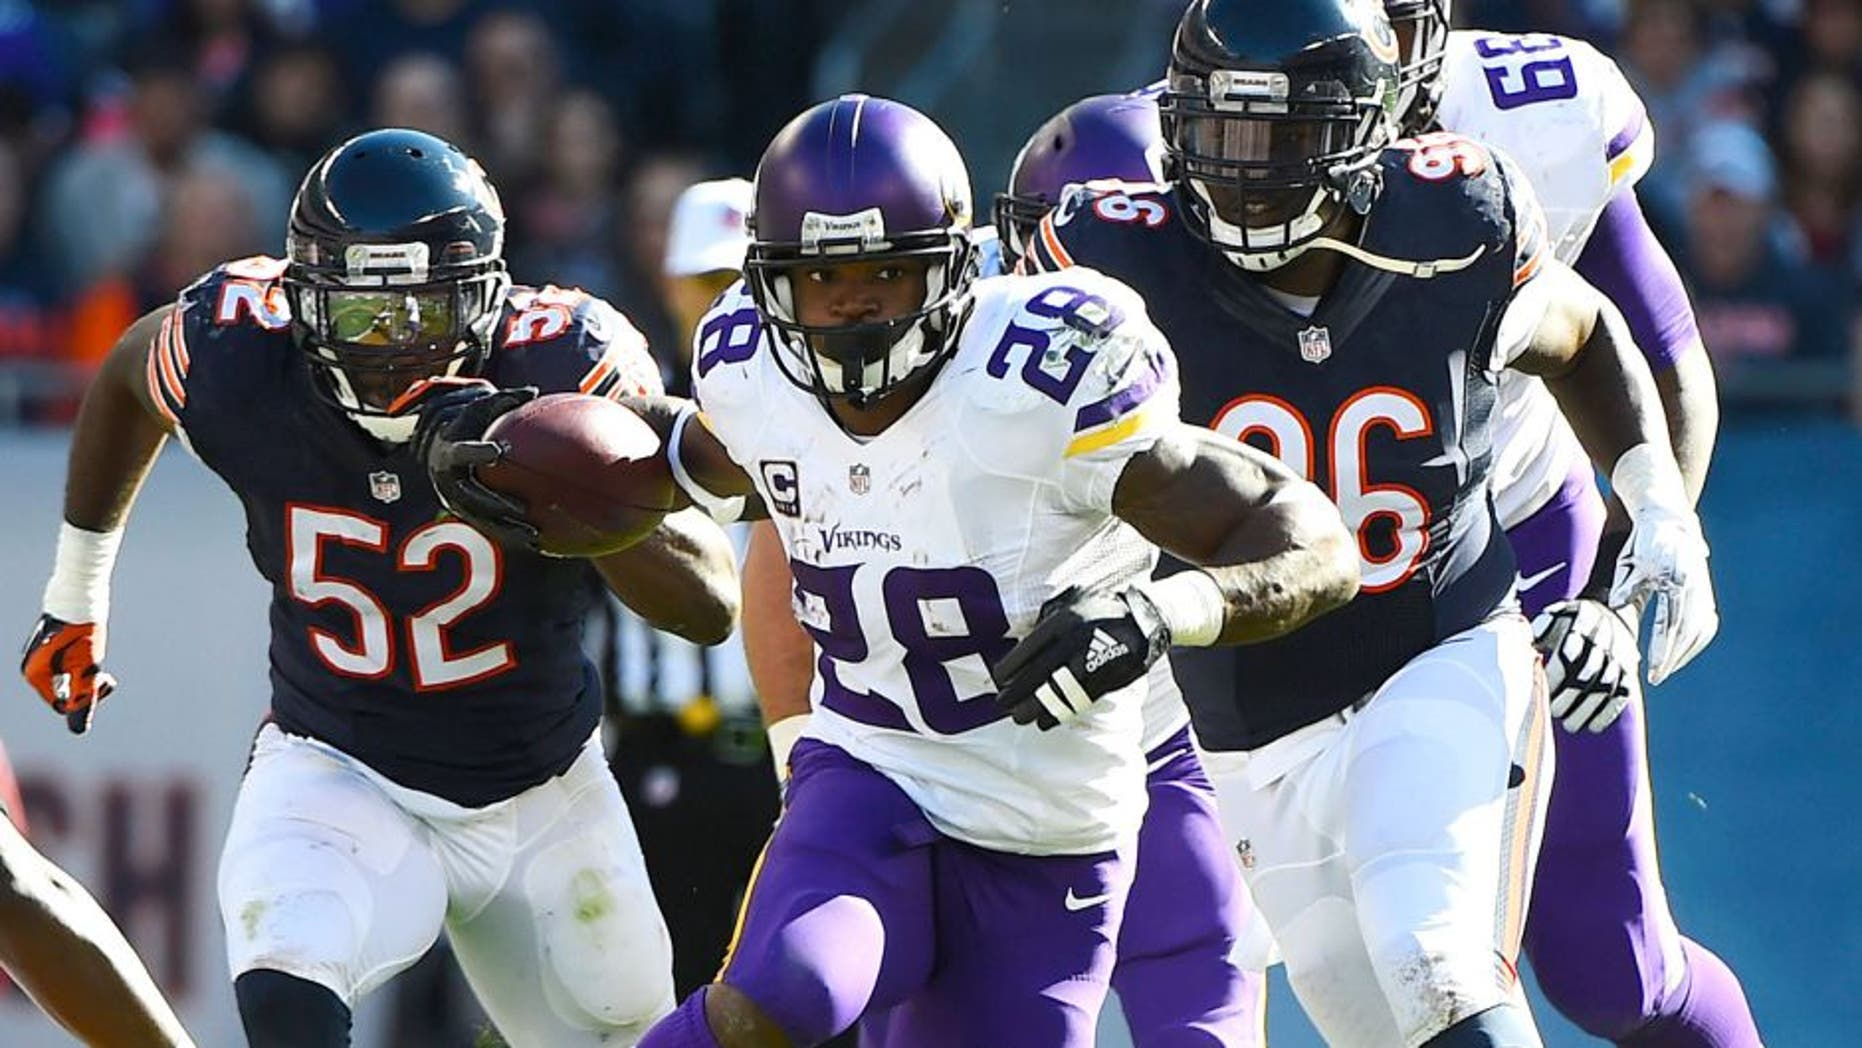 Nov 1, 2015; Chicago, IL, USA; Minnesota Vikings running back Adrian Peterson (28) carries the ball against the Chicago Bears during the first half at Soldier Field. Mandatory Credit: Mike DiNovo-USA TODAY Sports